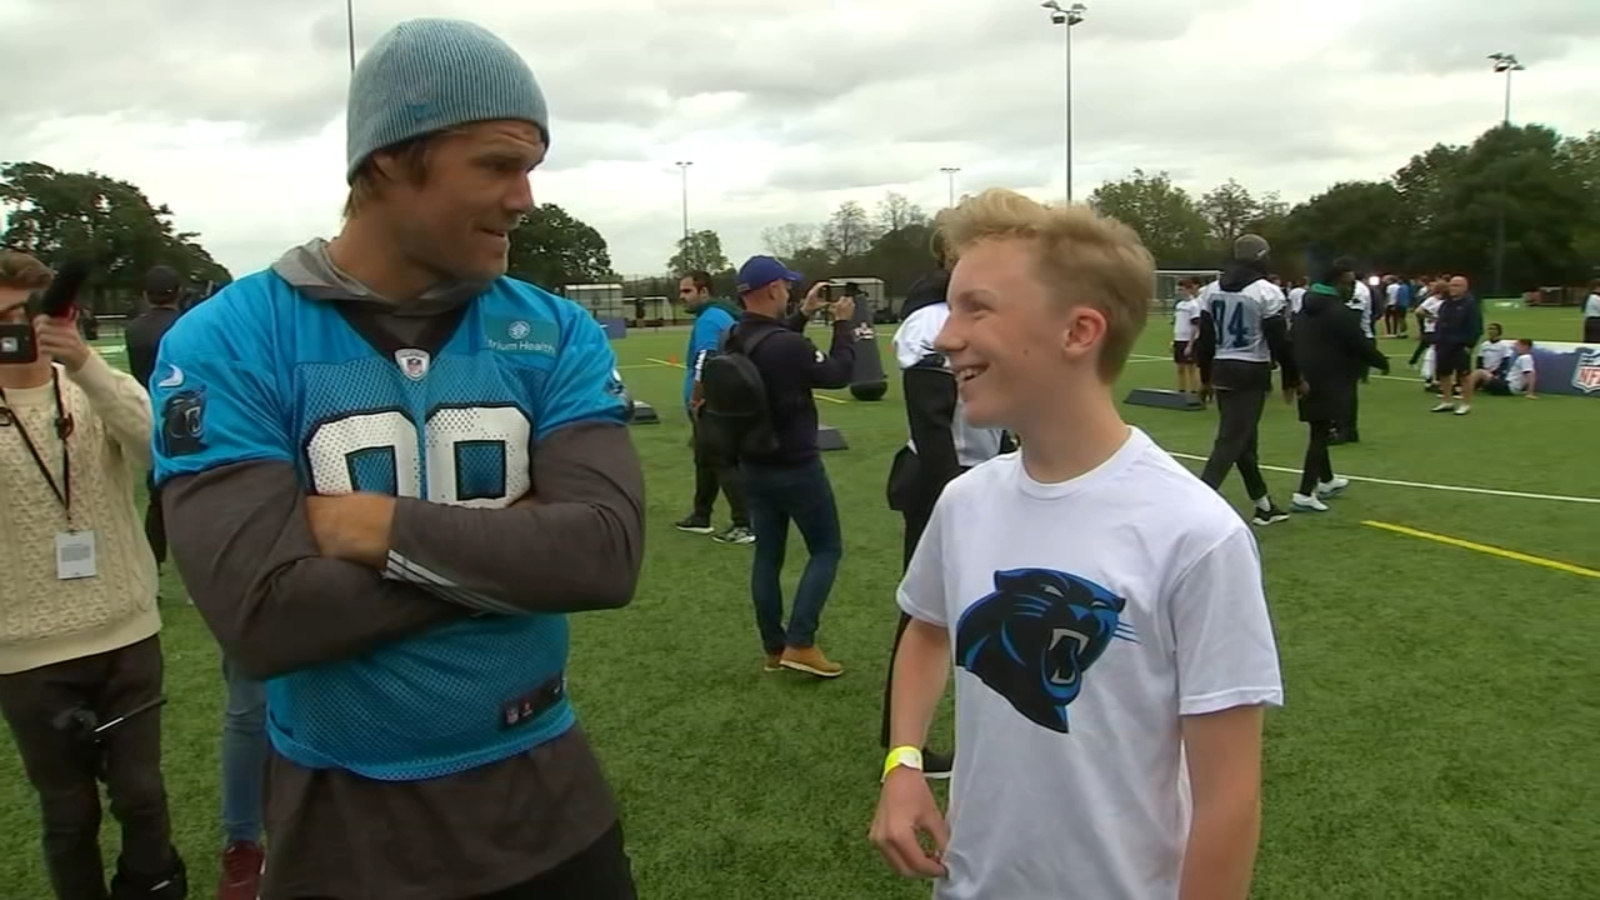 14-year-old originally from NC stunned that he got to play flag football in London with Carolina Panthers